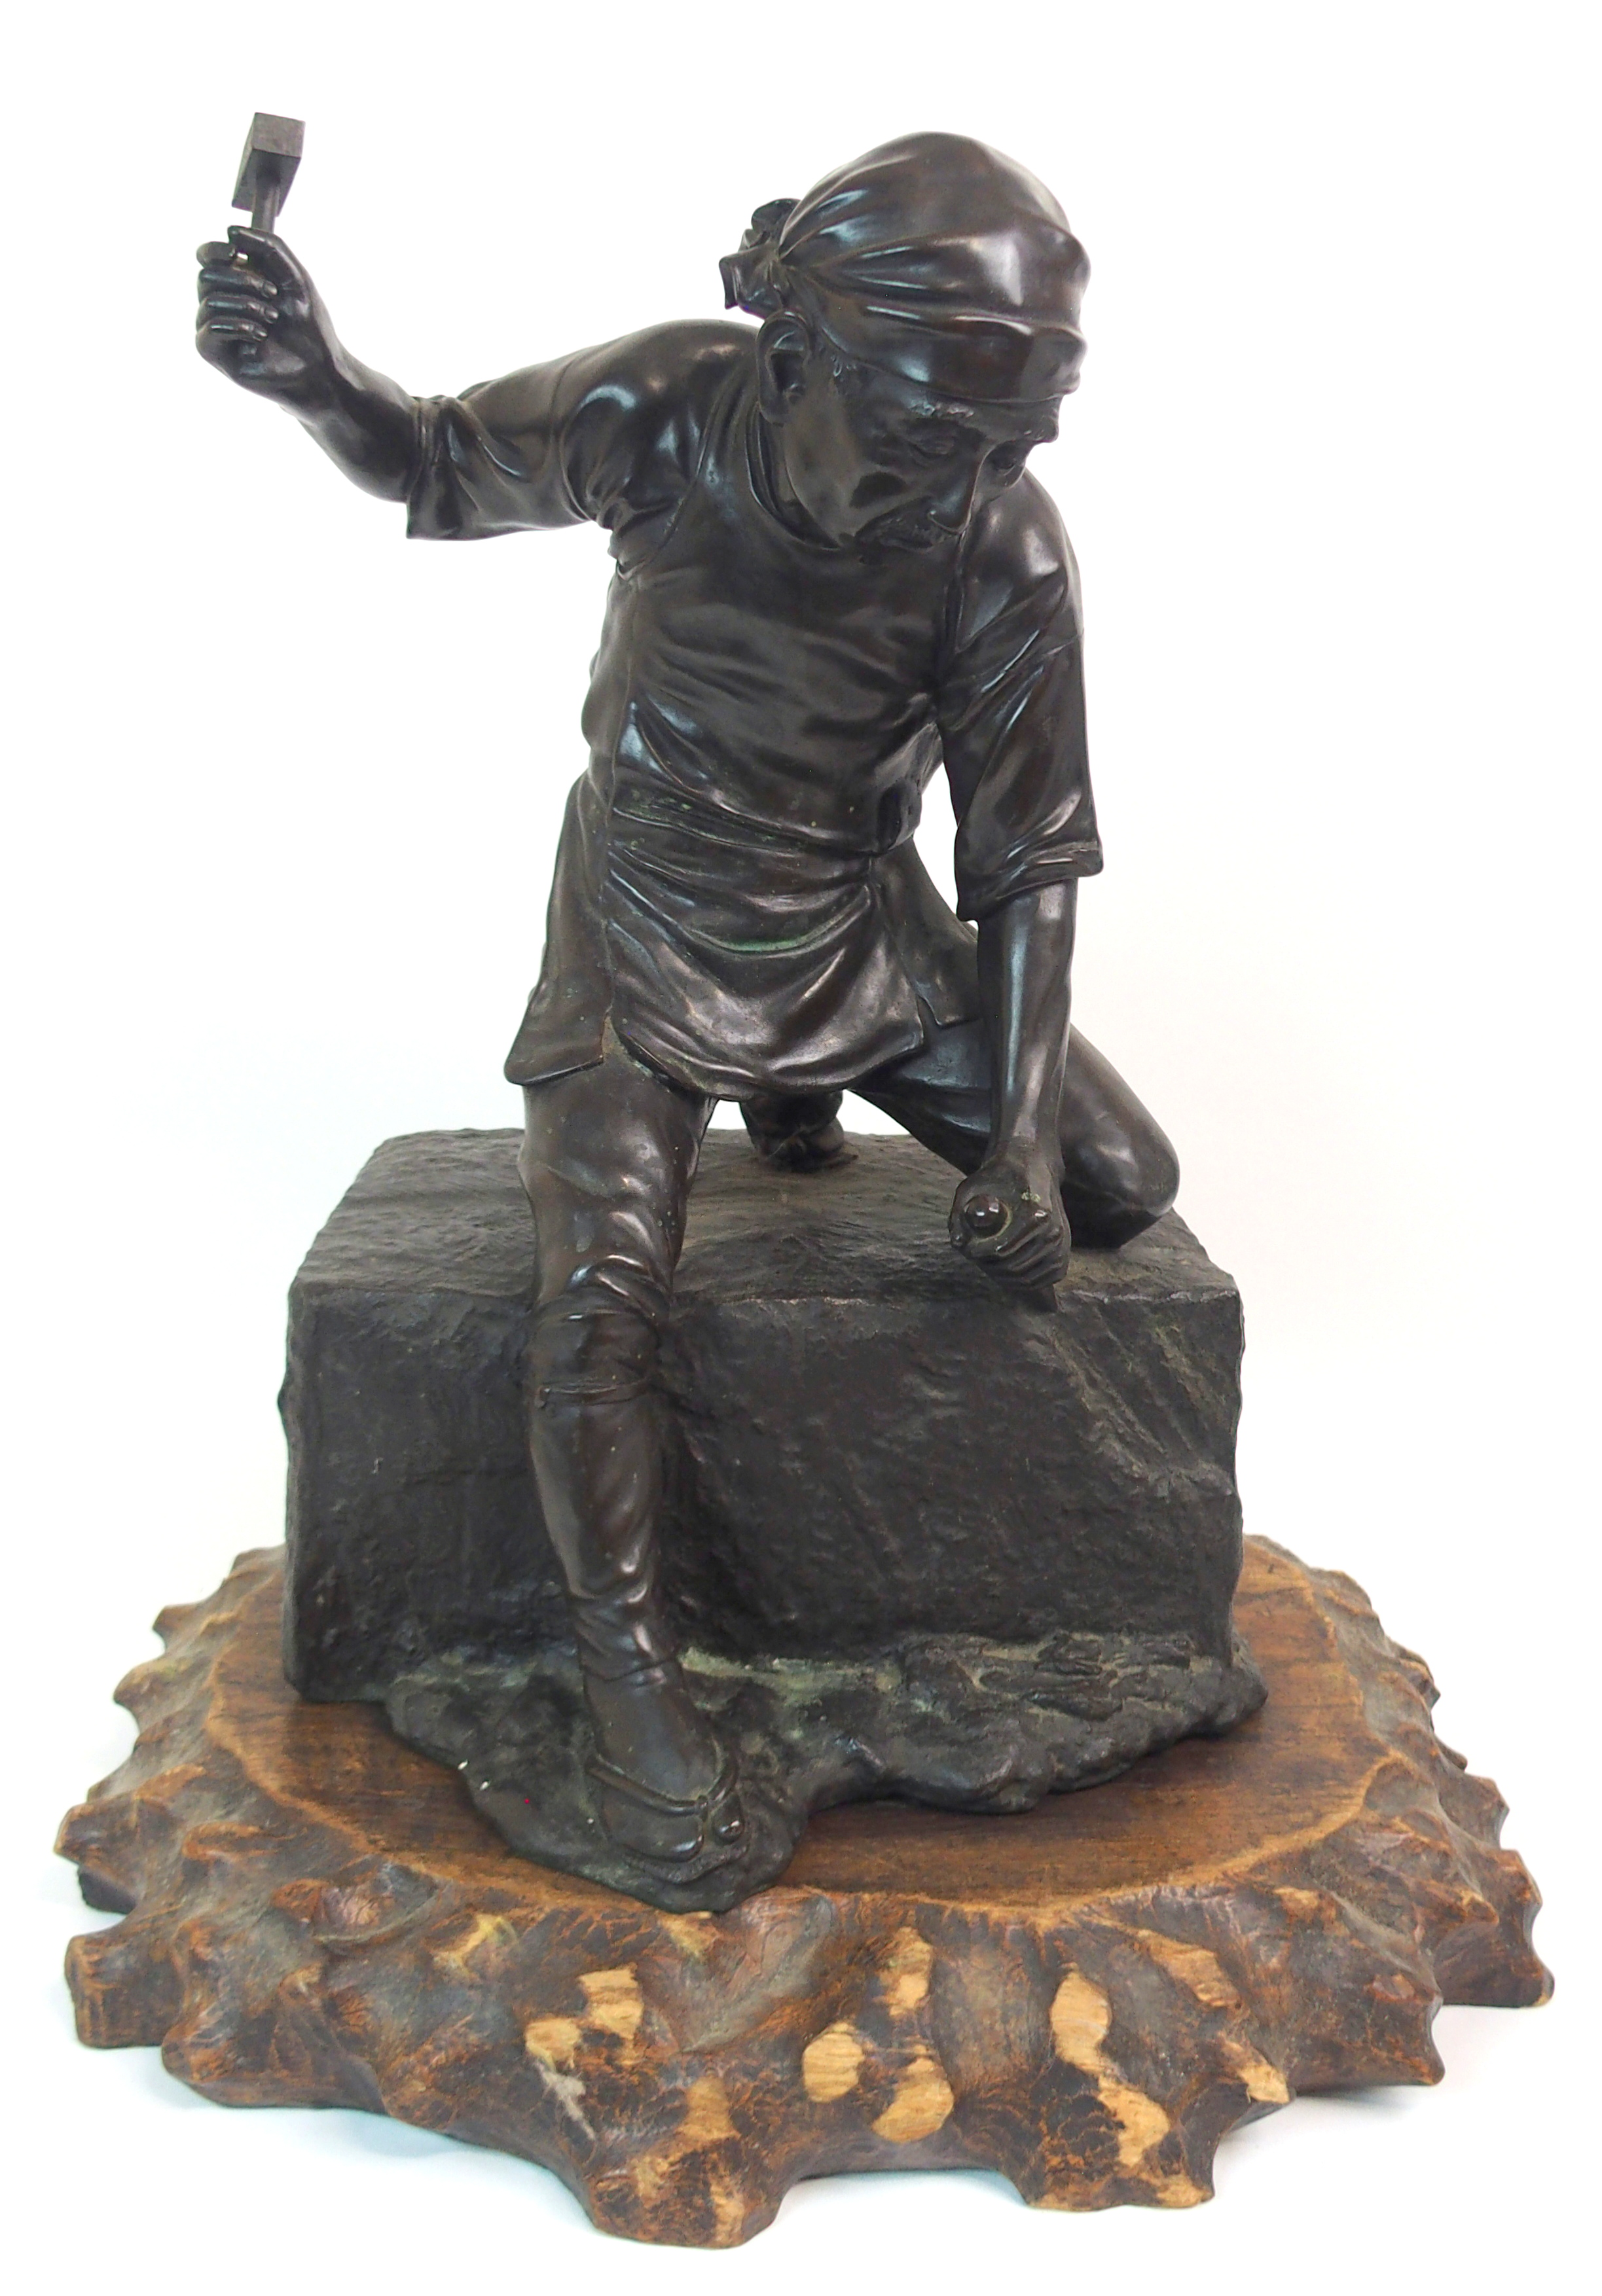 Lot 28 - A JAPANESE BRONZE OF A STONE MASON standing over a large stone block with hammer and chisel,